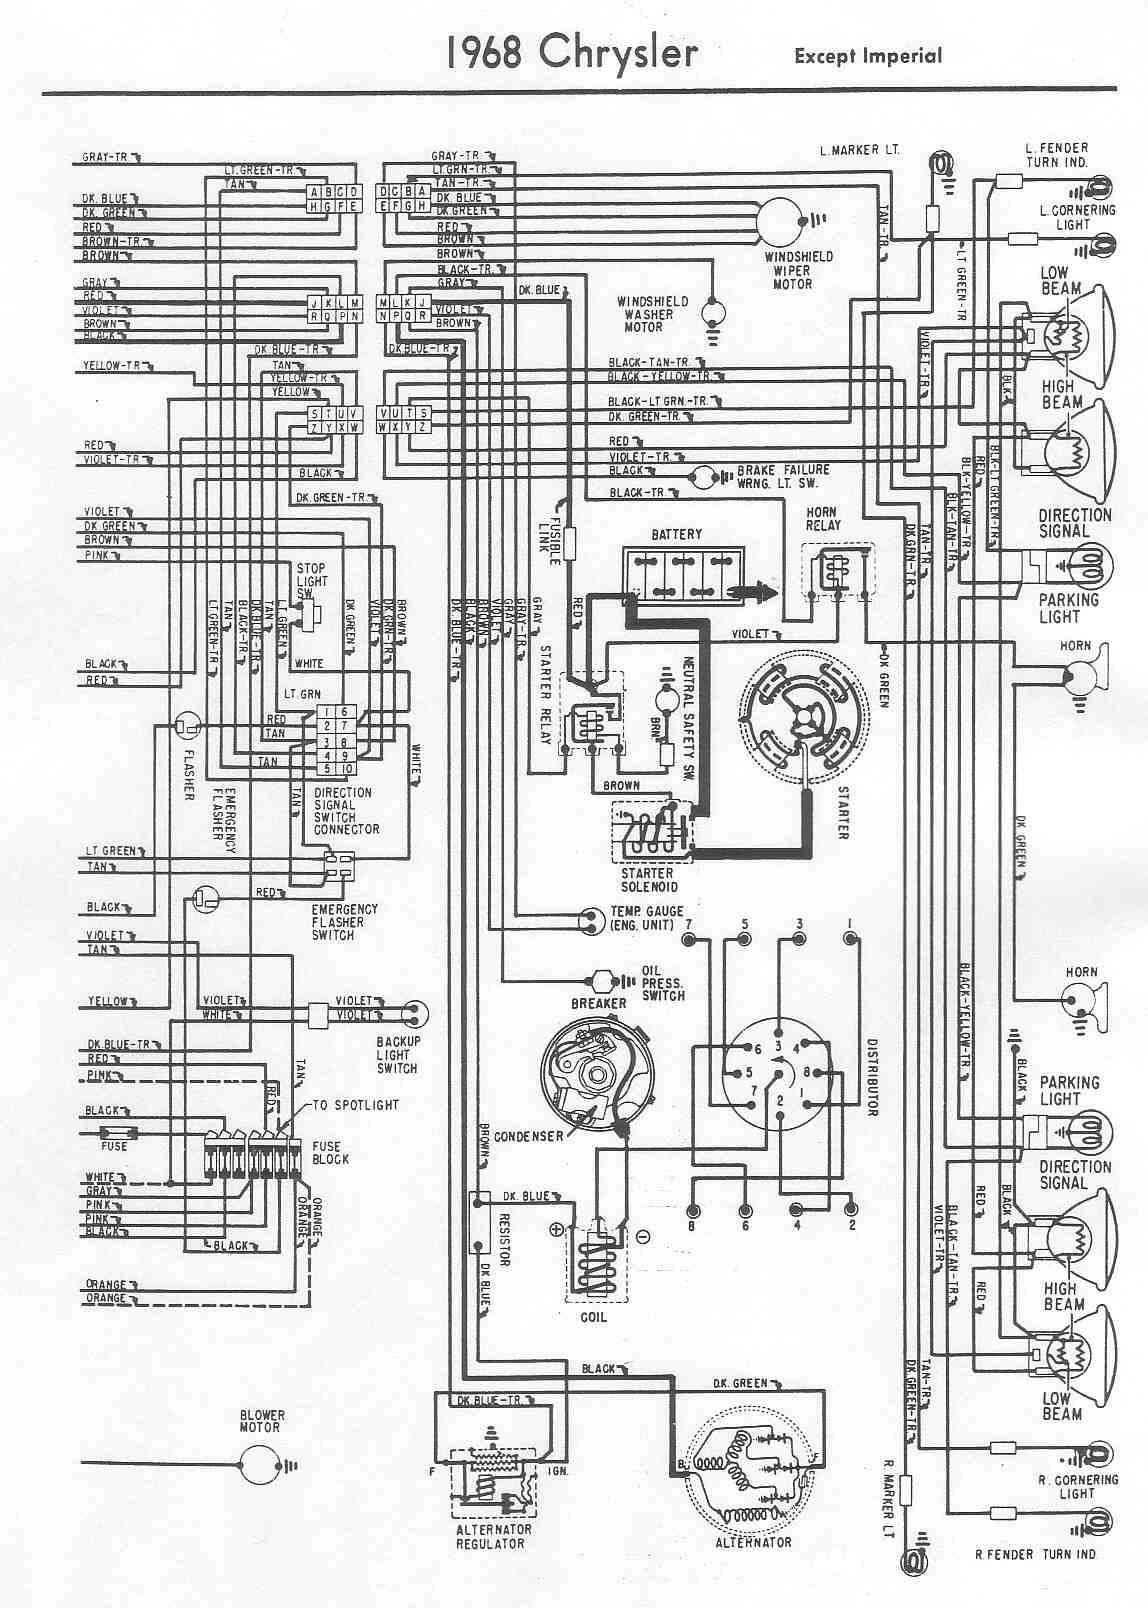 1953 dodge pickup wiring diagram wiring diagrams rh briefy co Chrysler Engine Wiring Harness Chrysler Wiring Harness Connectors